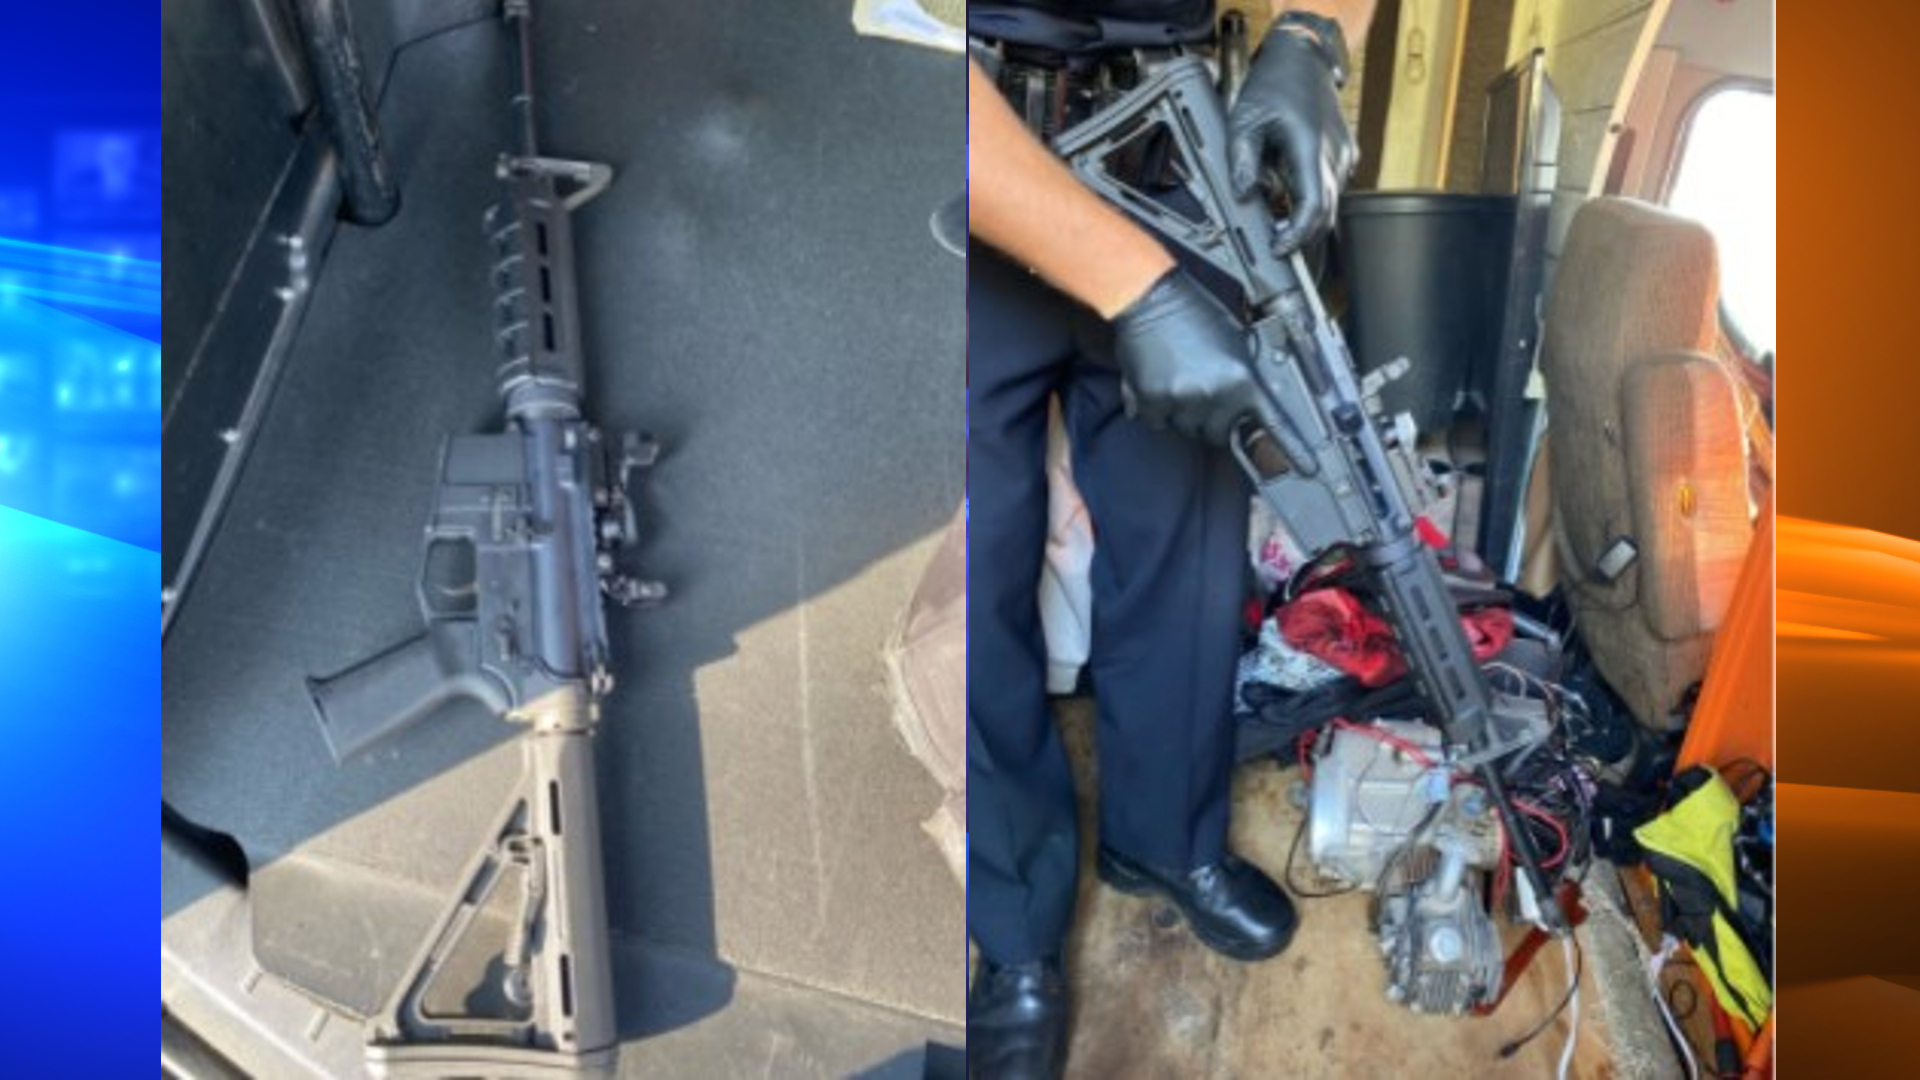 """The Los Angeles Police Department released these images on Sept. 30, 2021, showing a """"ghost gun"""" discovered while officers searched a stolen motorhome in North Hollywood."""